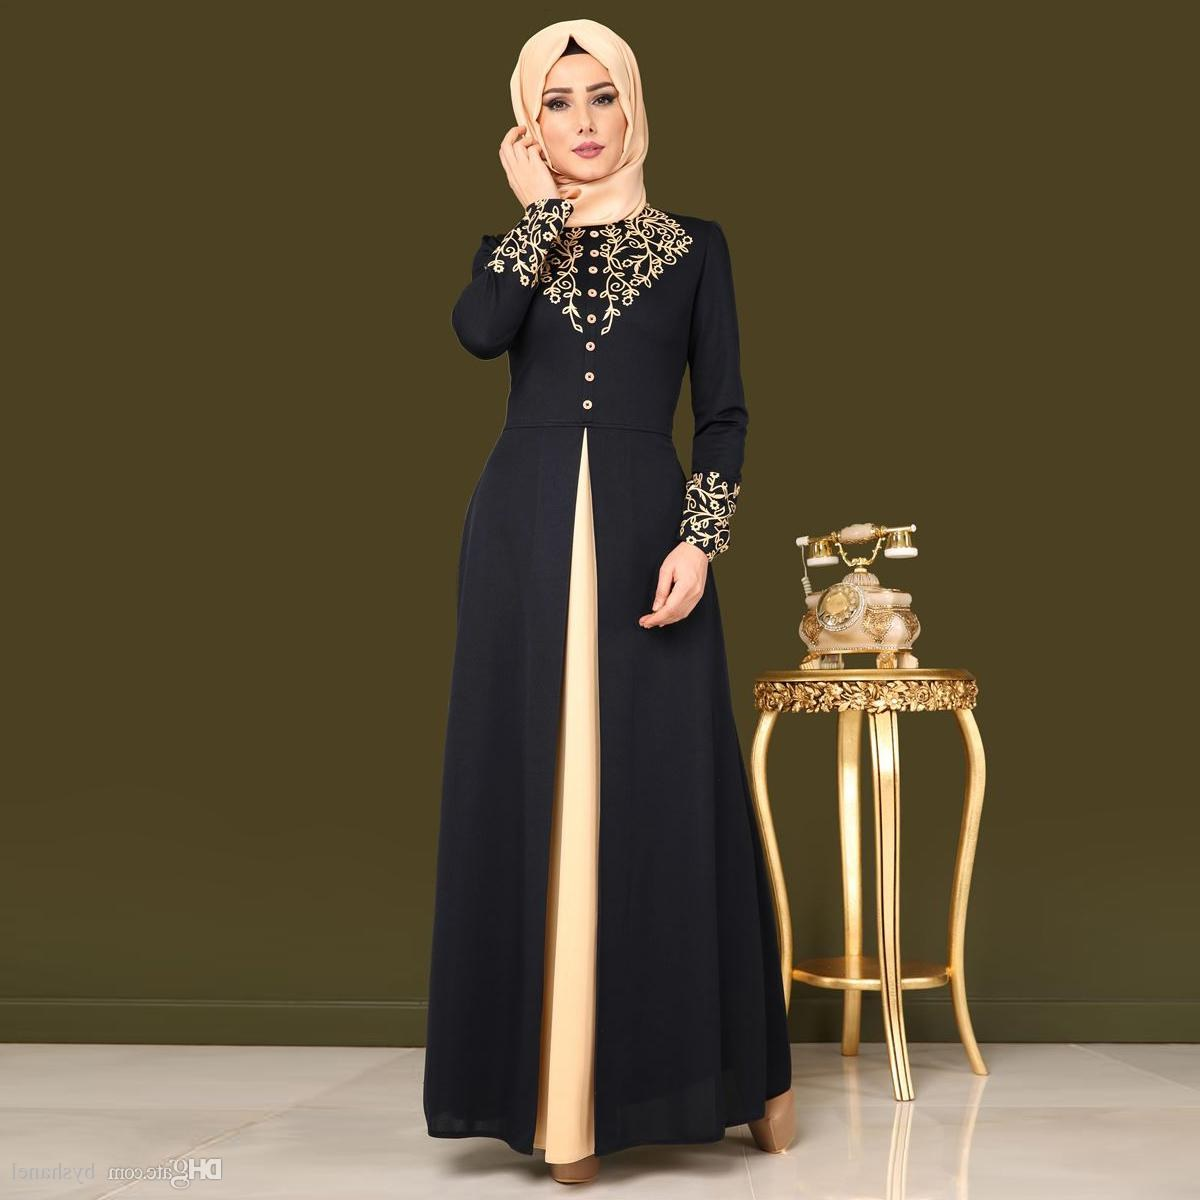 Design Model Dress Bridesmaid Hijab Drdp Women soft Material Dress Muslim Loose Abaya Kaftan islamic Maxi Robe Flower Long Dress for Ramadan